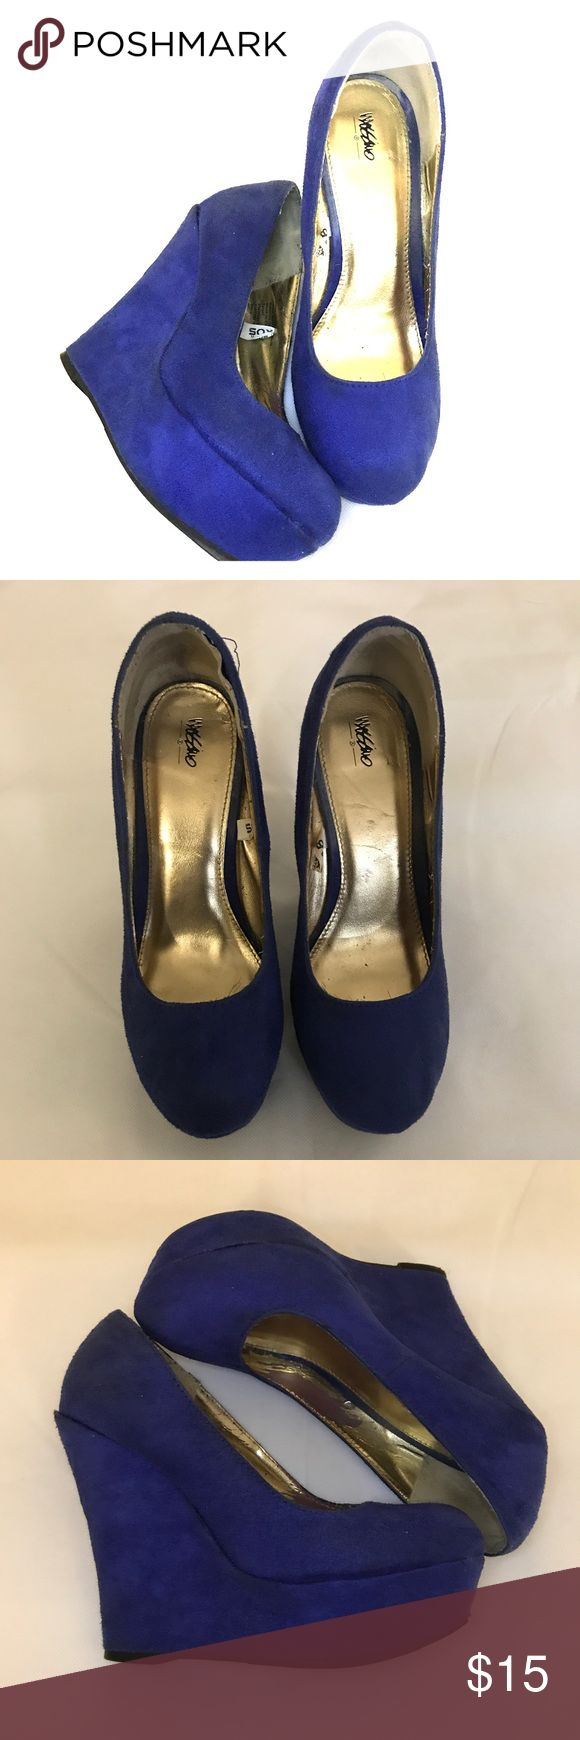 targets mossimo blue wedge heels targets mossimo blue wedge heels minimum wear and tare! Fair condition Mossimo Supply Co Shoes Wedges